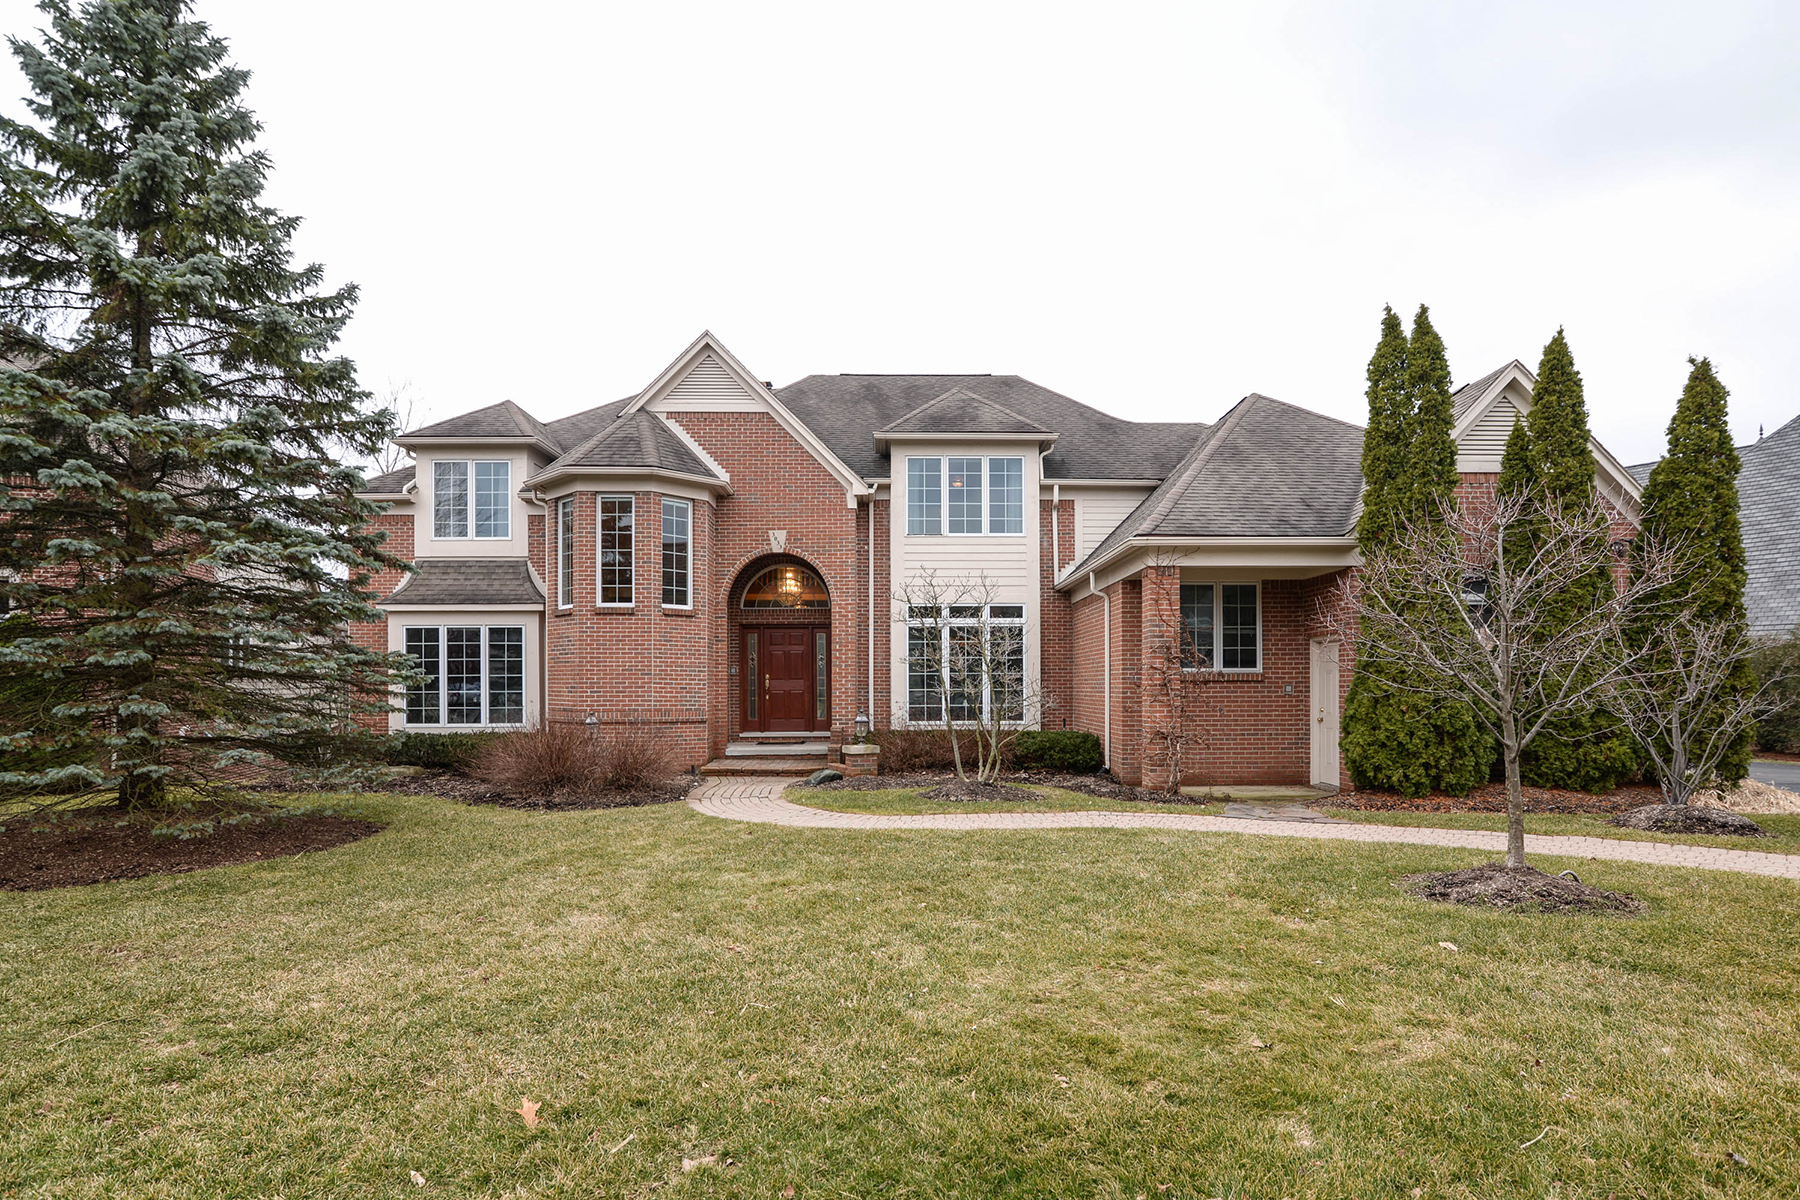 Single Family Home for Sale at Bloomfield Township 3033 Ridge Bloomfield Township, Michigan 48302 United States